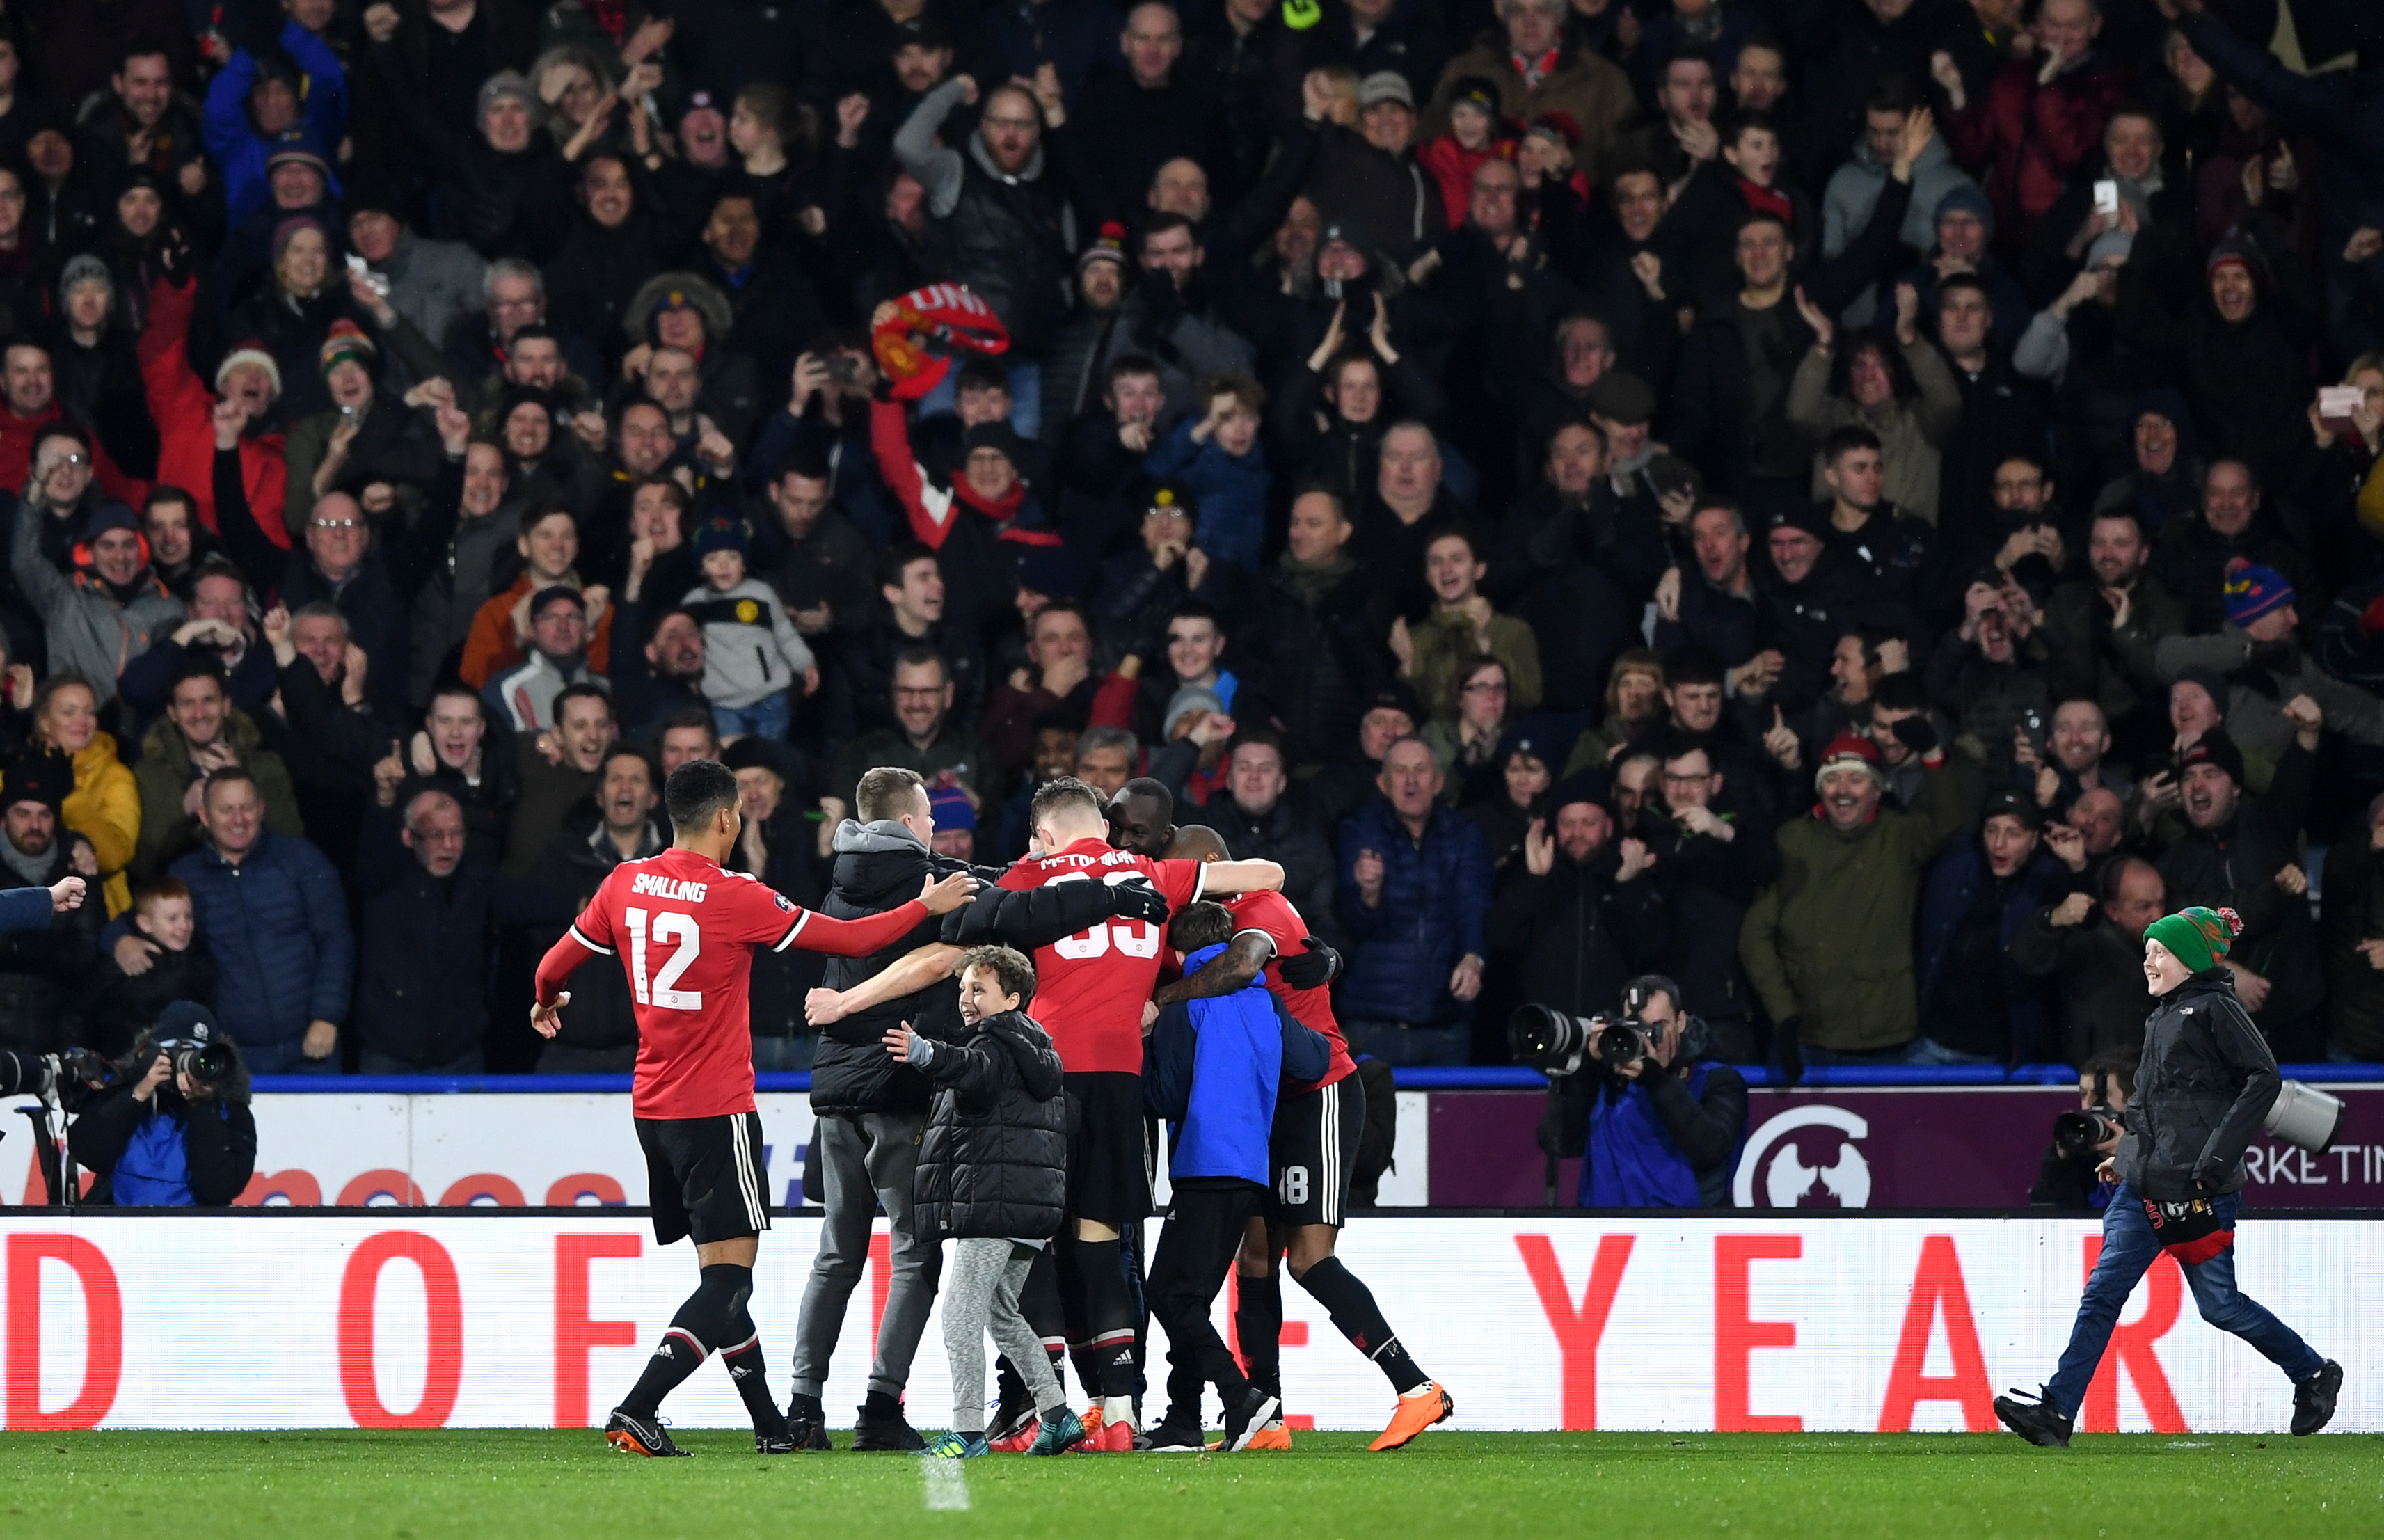 VAR issue official apology after Manchester United shambles